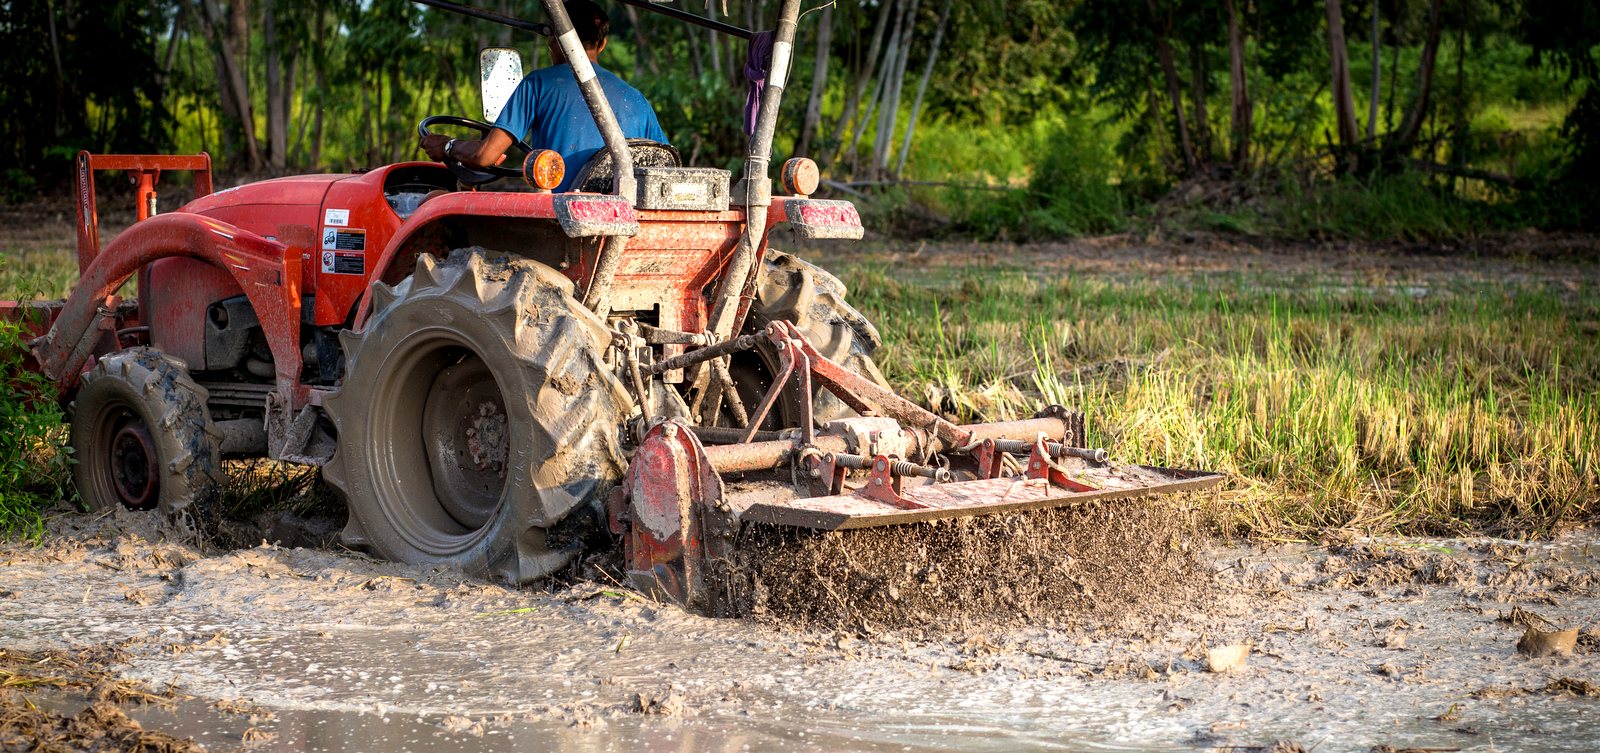 Best Rotary Tillers for Tractor 2